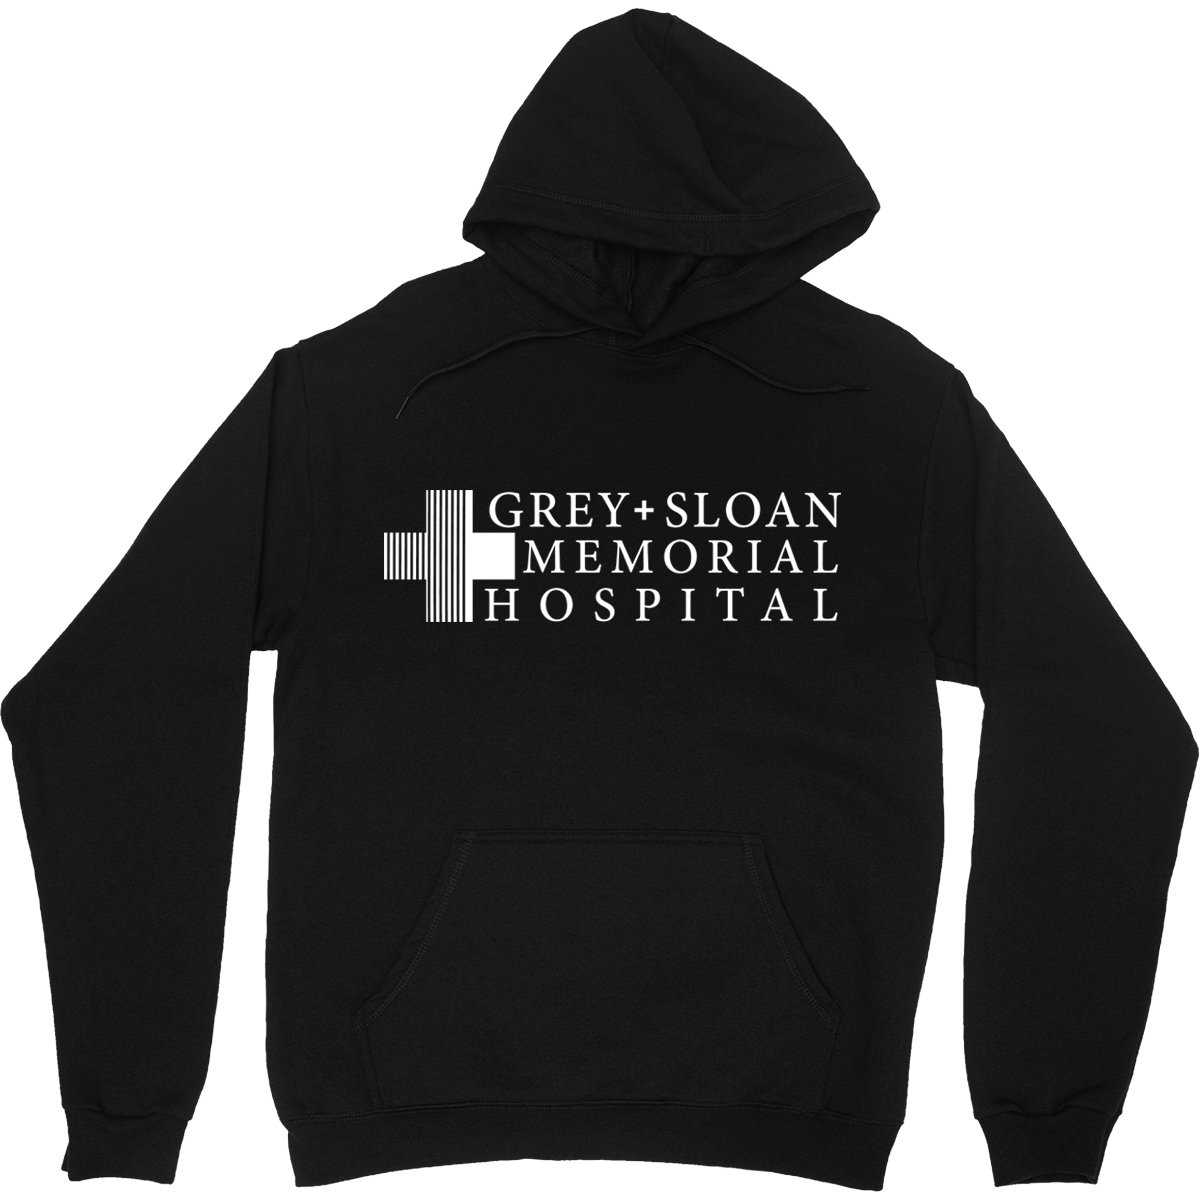 Nuffsaid Grey Sloan Memorial Hospital Sportsweater, Sweater And Pullover - High Quality Streetwear Hoodies Sweatshirts